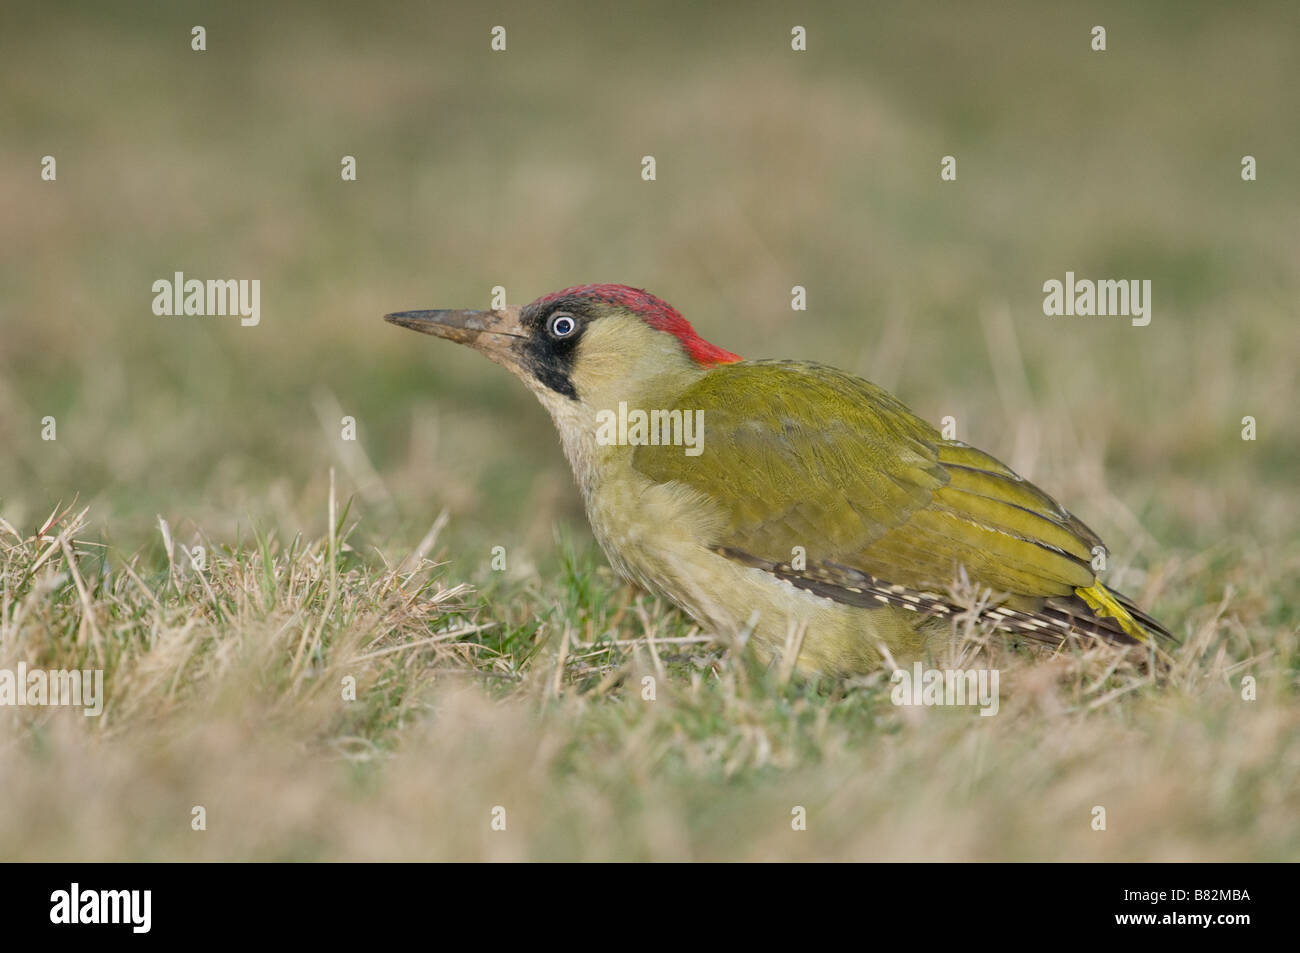 Green Woodpecker Picus viridis stood in grass - Stock Image